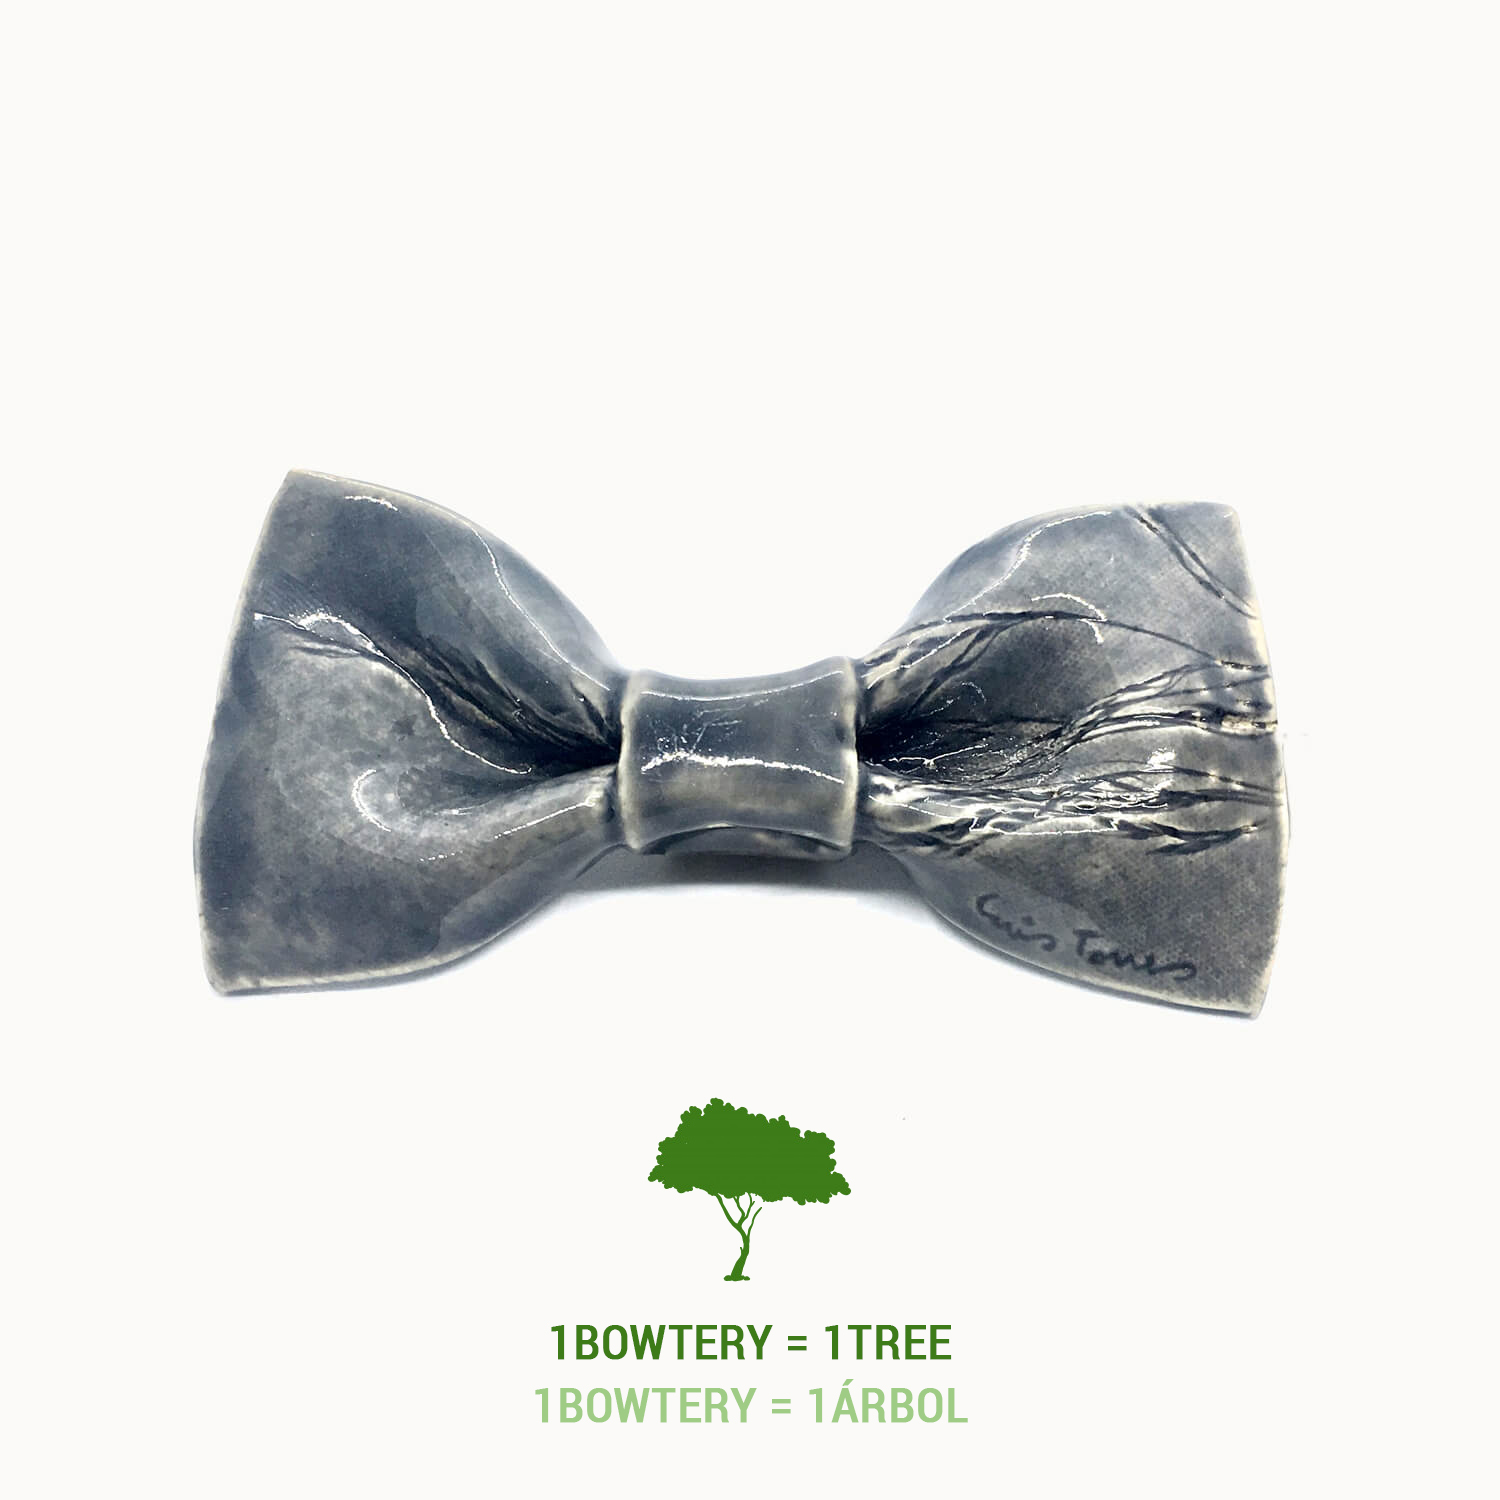 Pajarita de cerámica Bowtery ecofriendly planta un árbol por la compra de cada pajarita contra el cambio climático. Ceramic Bow tie plant a tree for every purchase against climate change